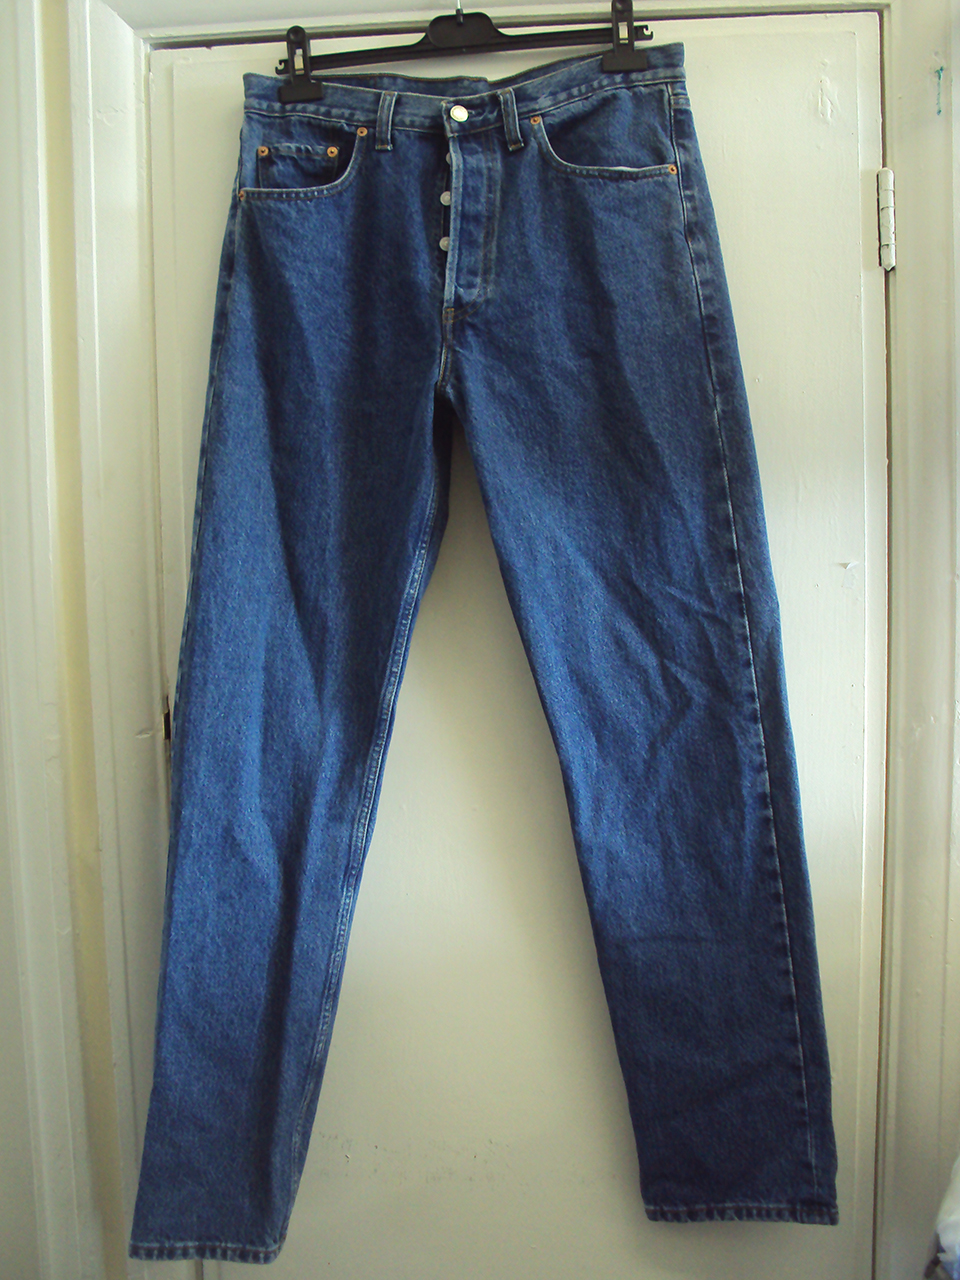 'So, Zo...': Refashion Friday Tips: How to Select Jeans ...